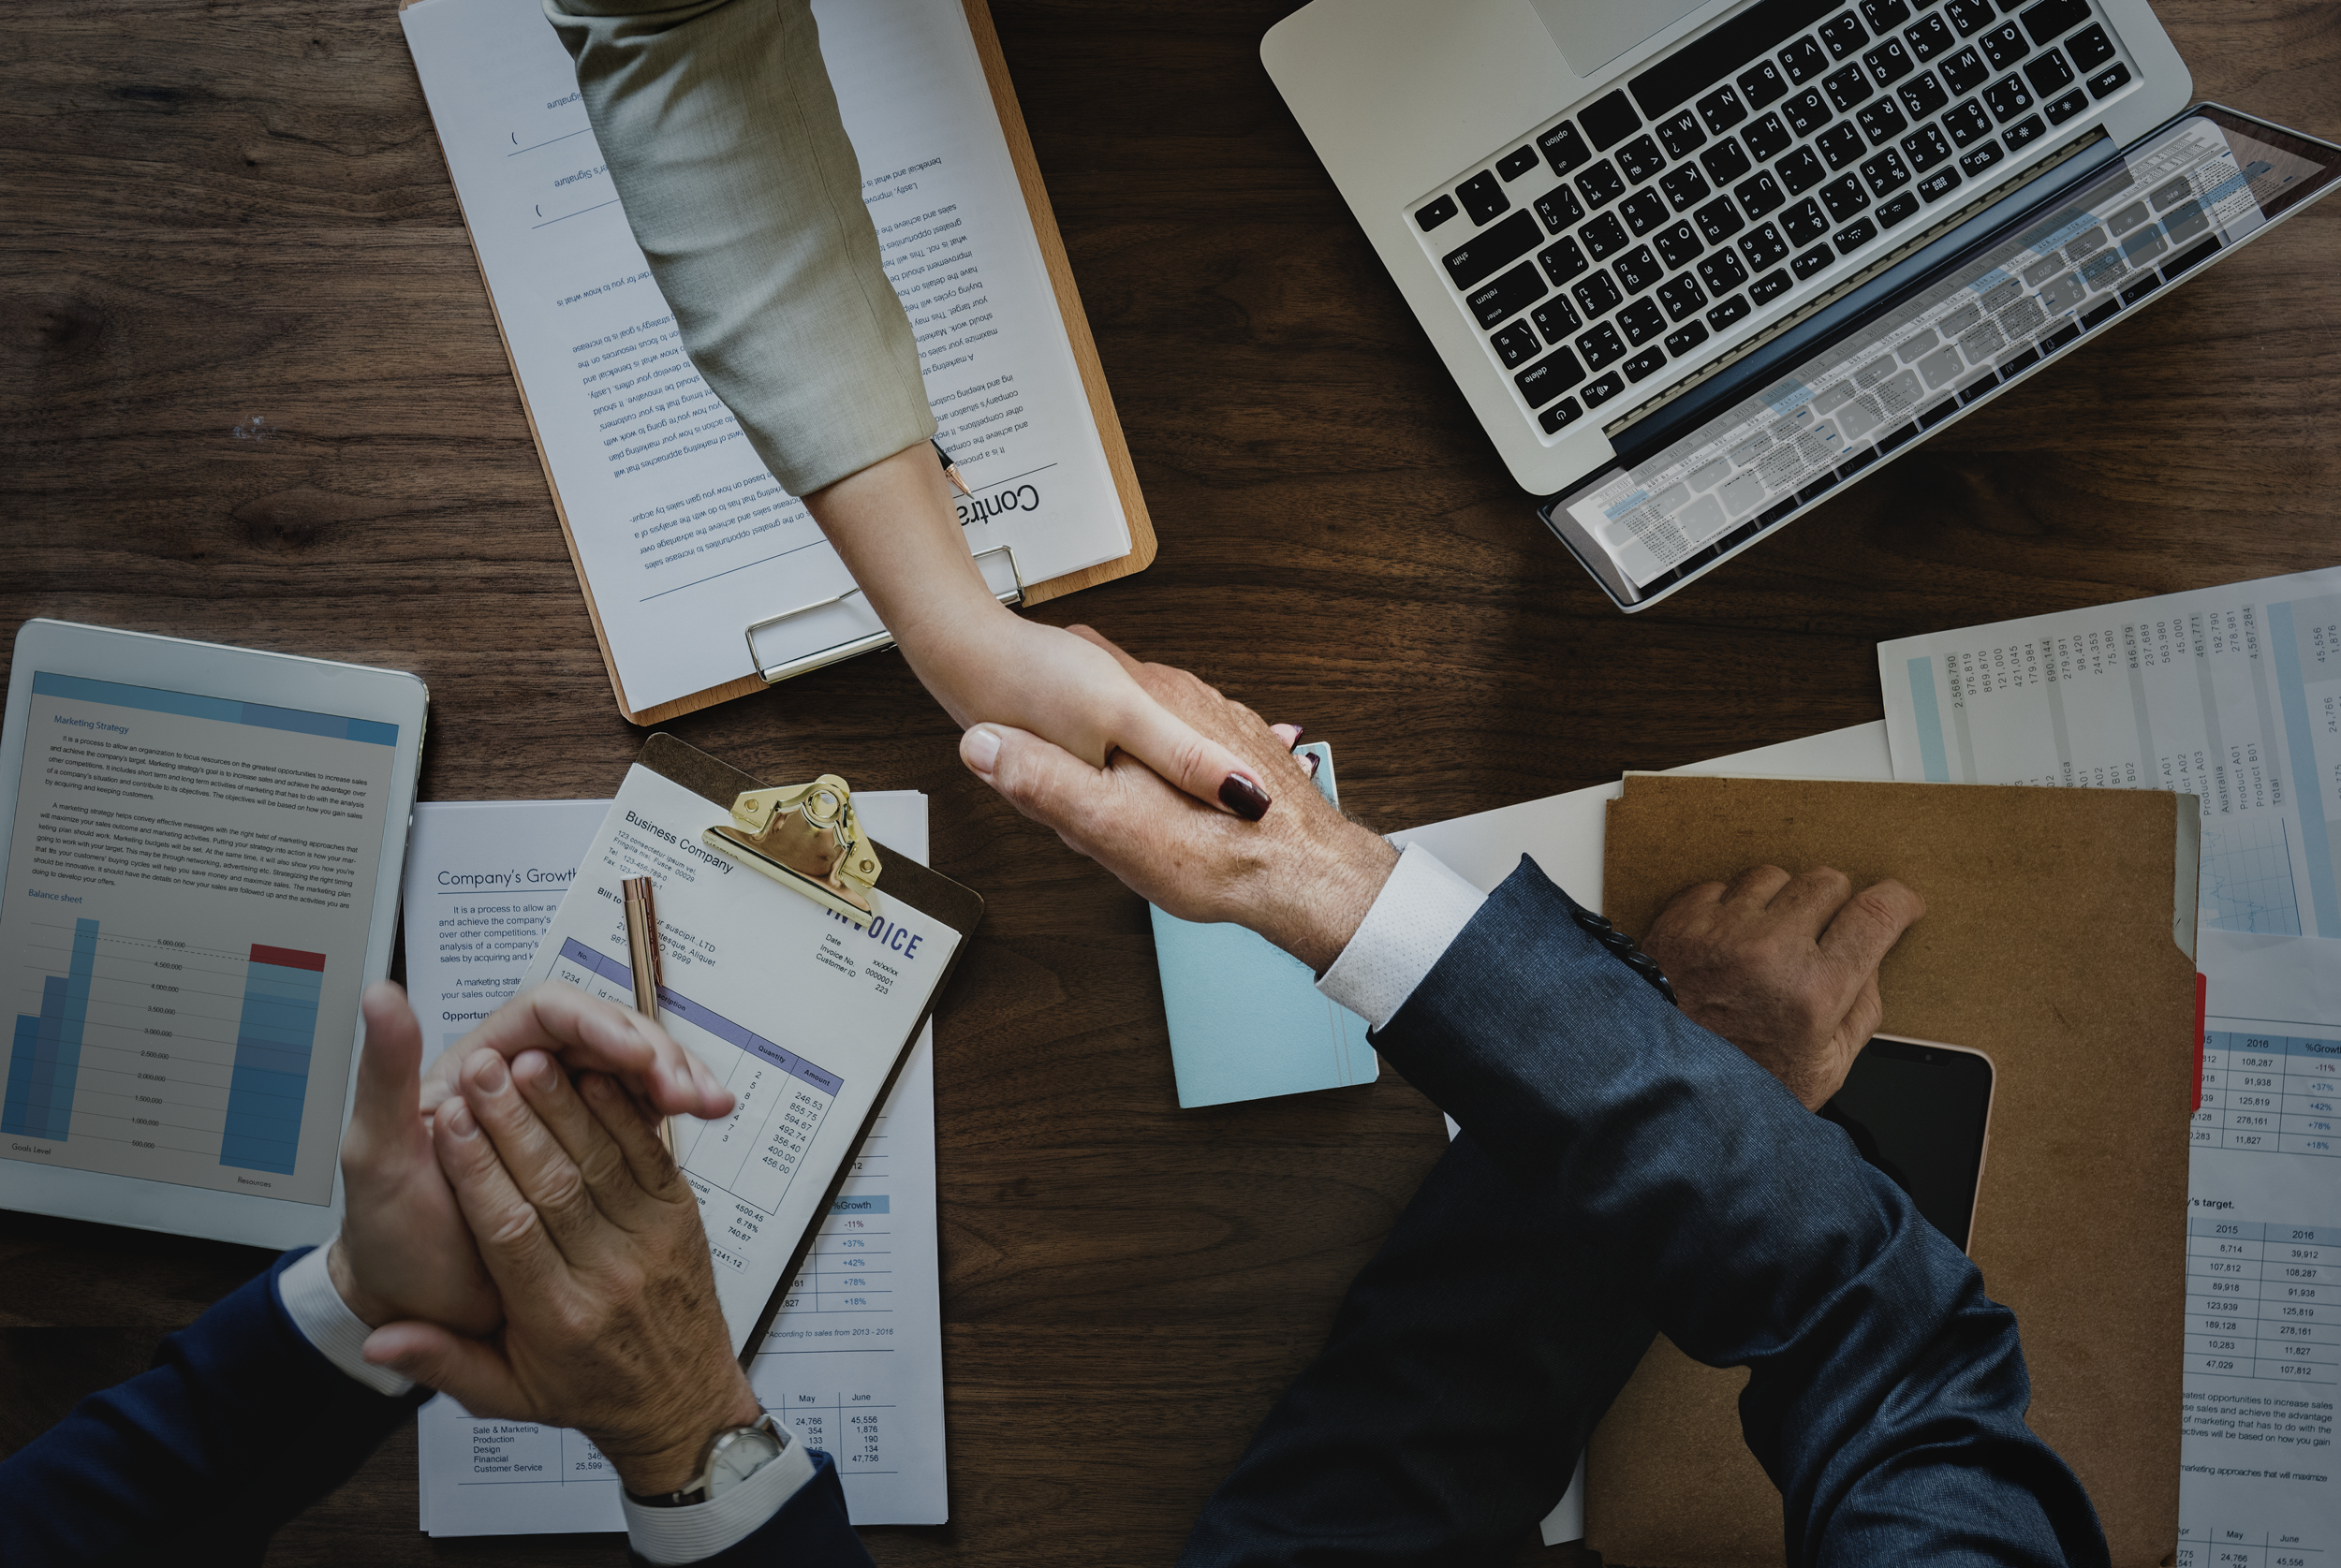 OUTSOURCEDCIO - We blend our expertise from managing portfolios of alternative investments to provide best fit portfolios within a diverse set of opportunities with fund managers in the space.